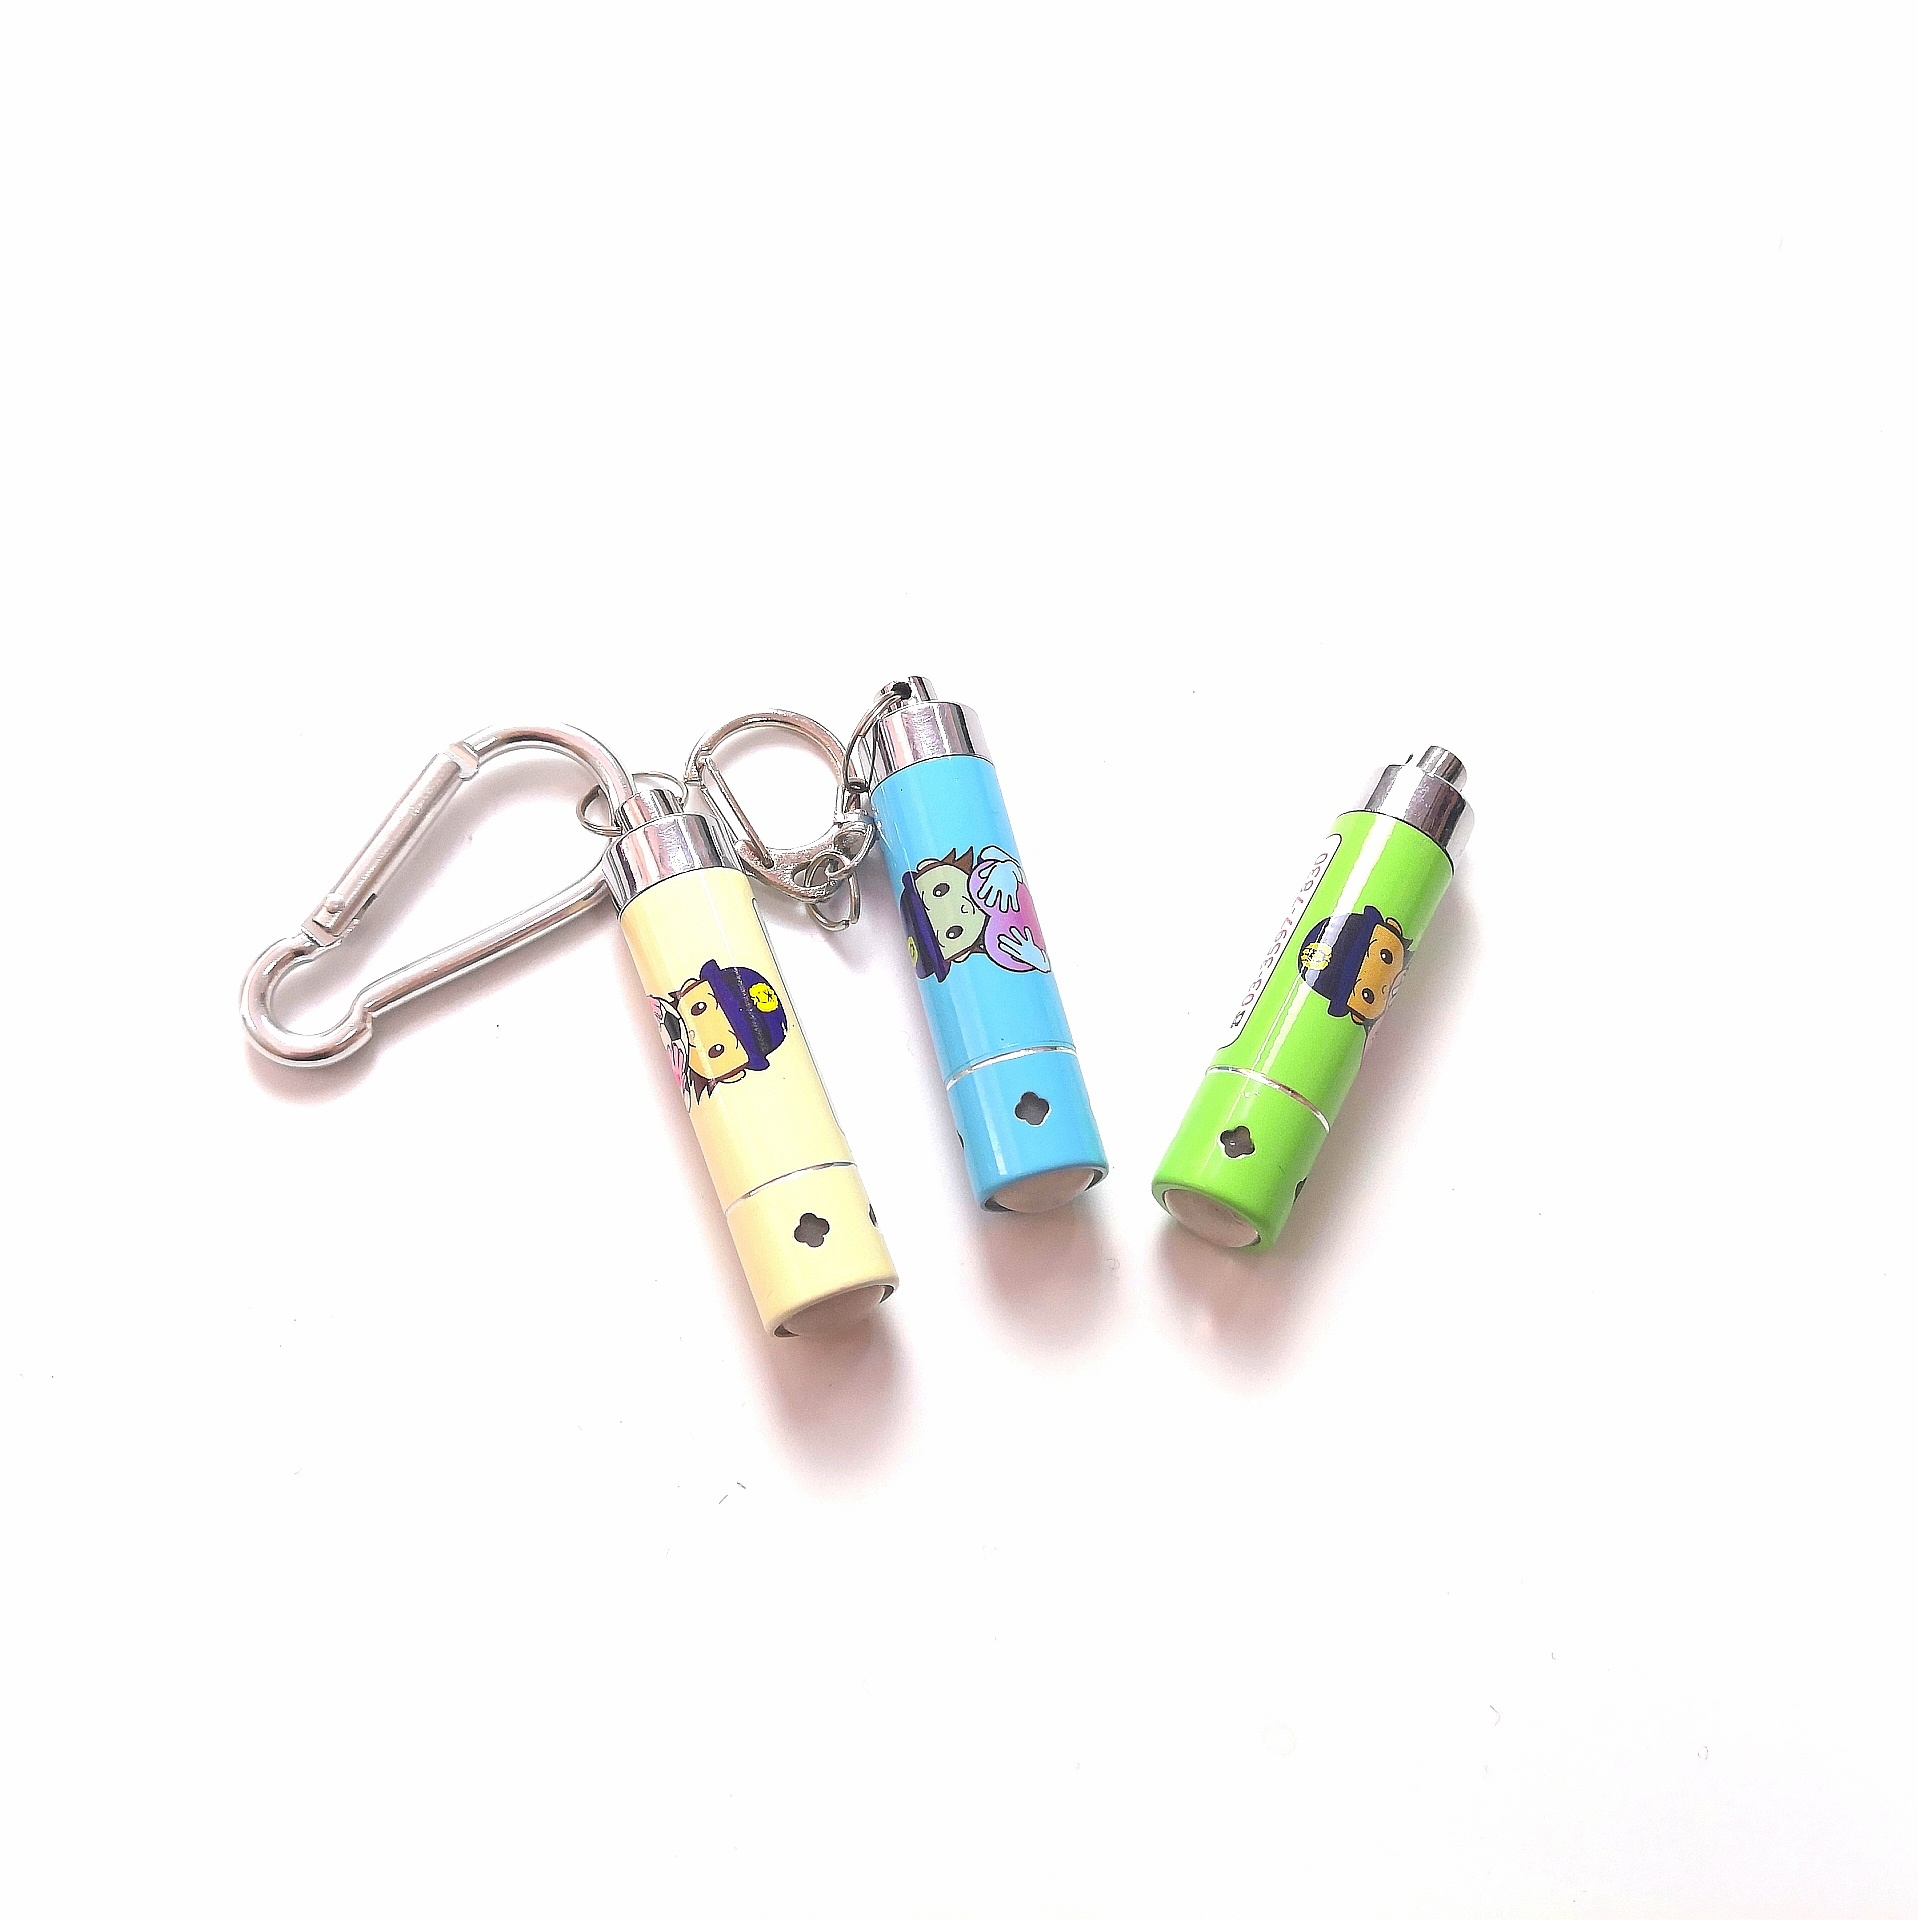 Colorful LED Tiny Flashlight Promotional Gifts Key Chain pictures & photos